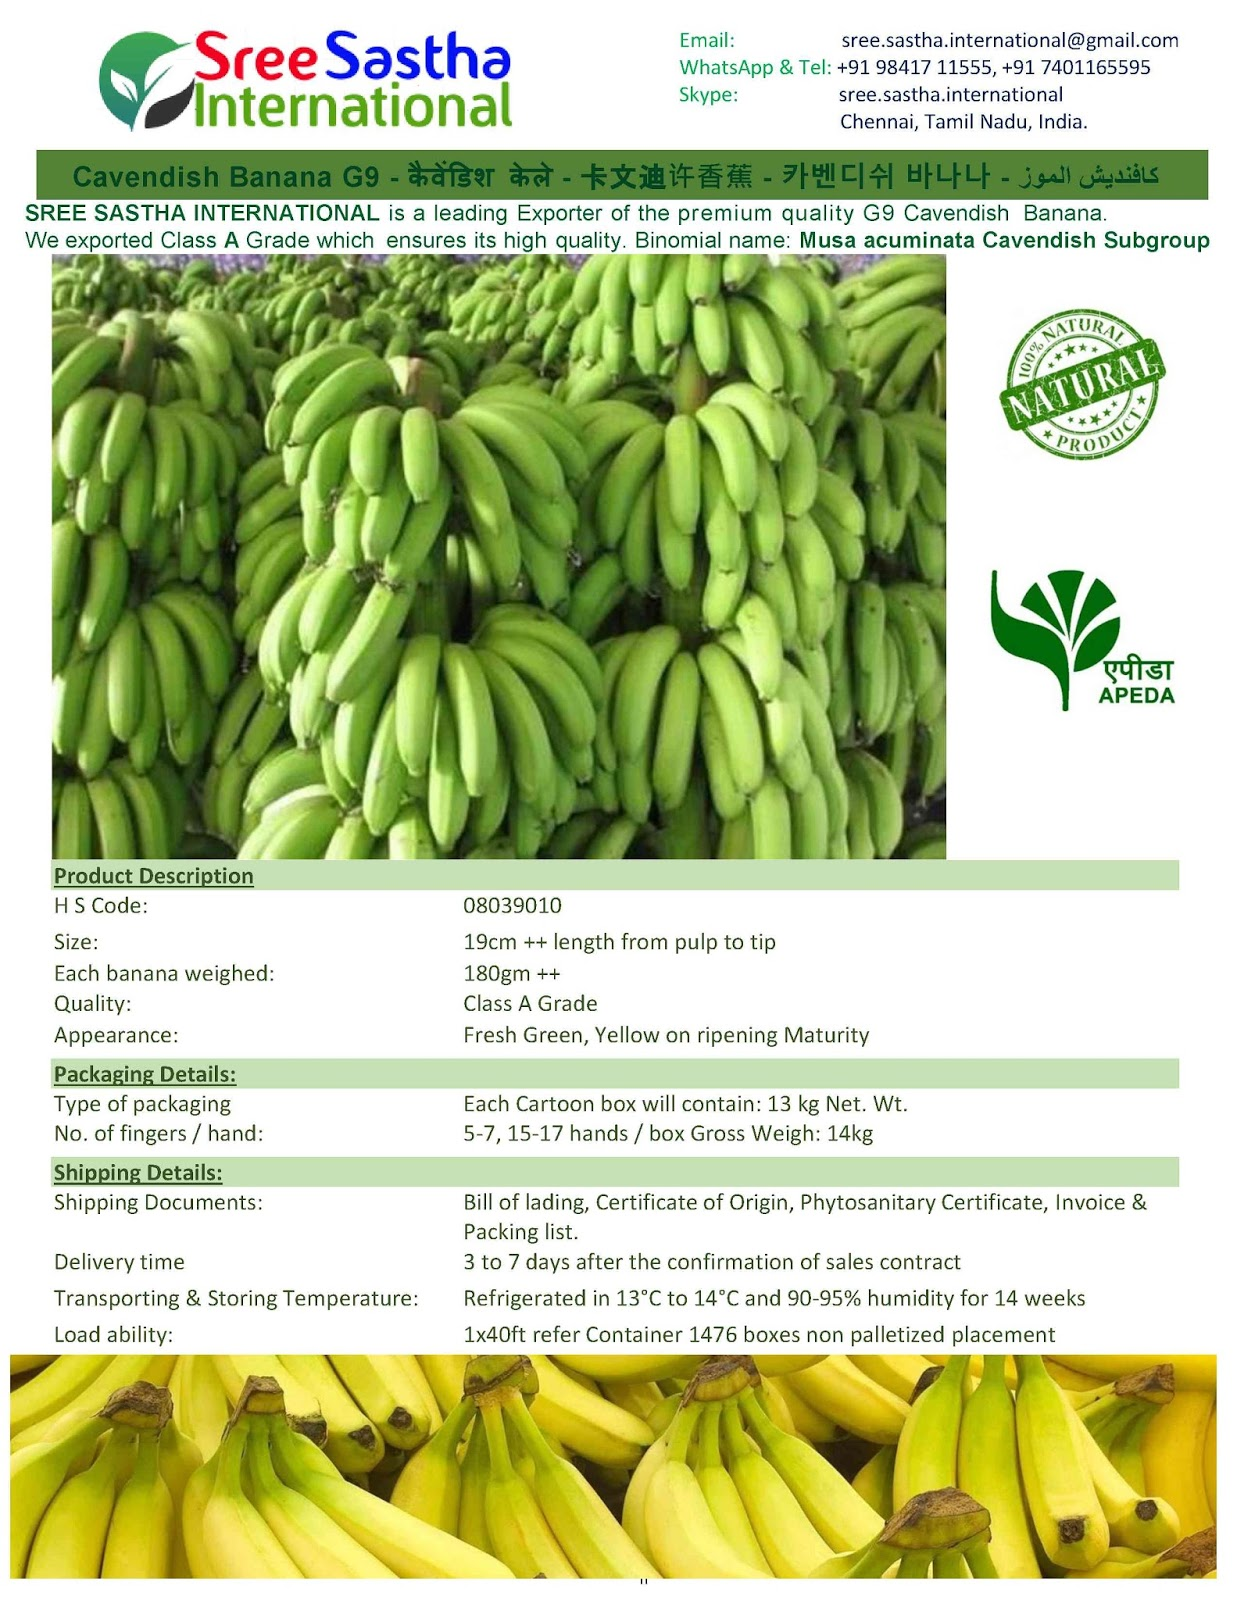 Fruits and Vegetable Export - インドからの果物と野菜の輸出